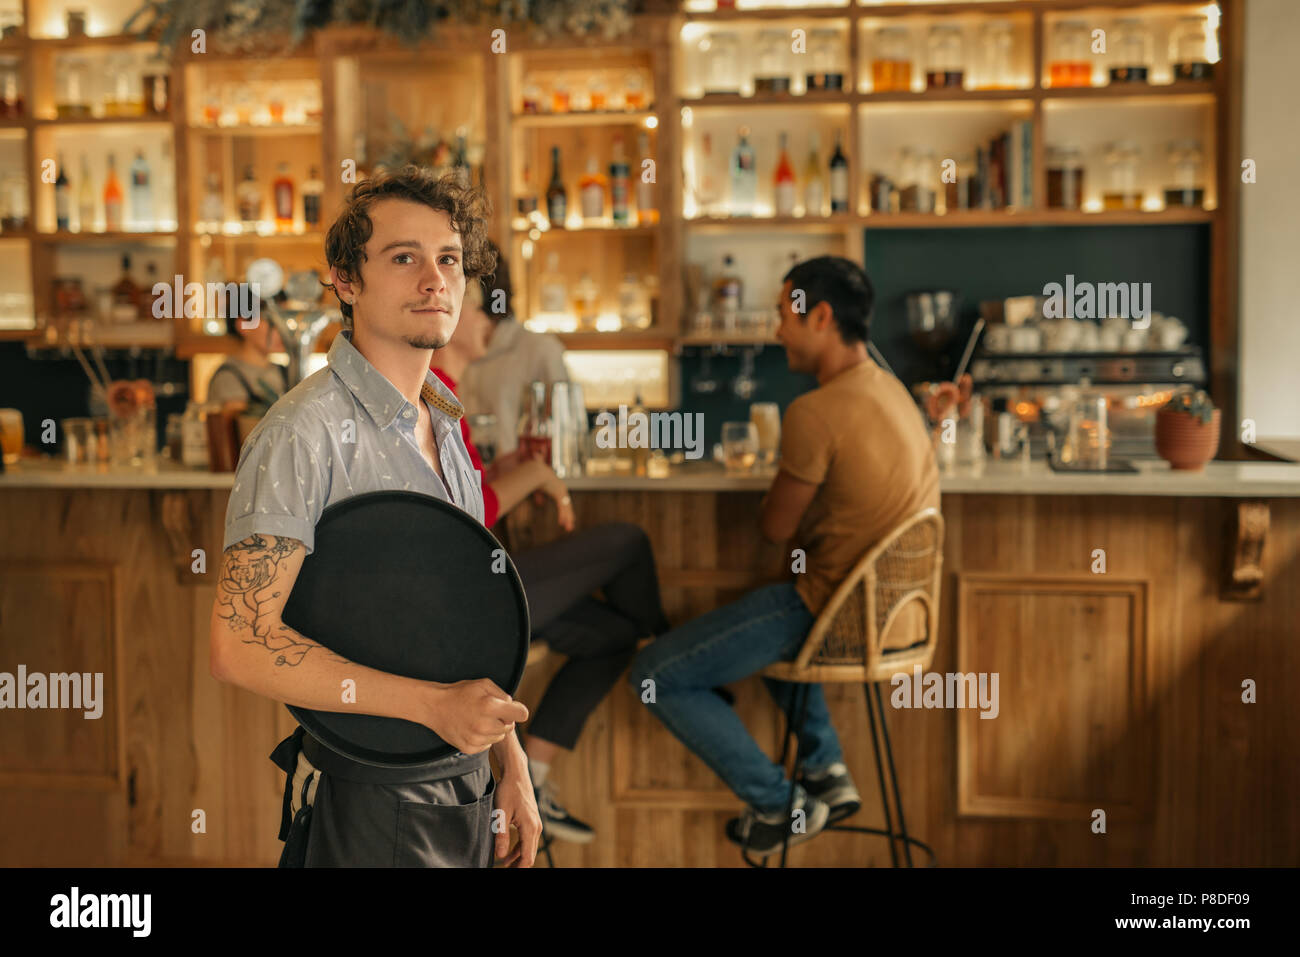 Waiter standing in a trendy bar ready to serve customers - Stock Image